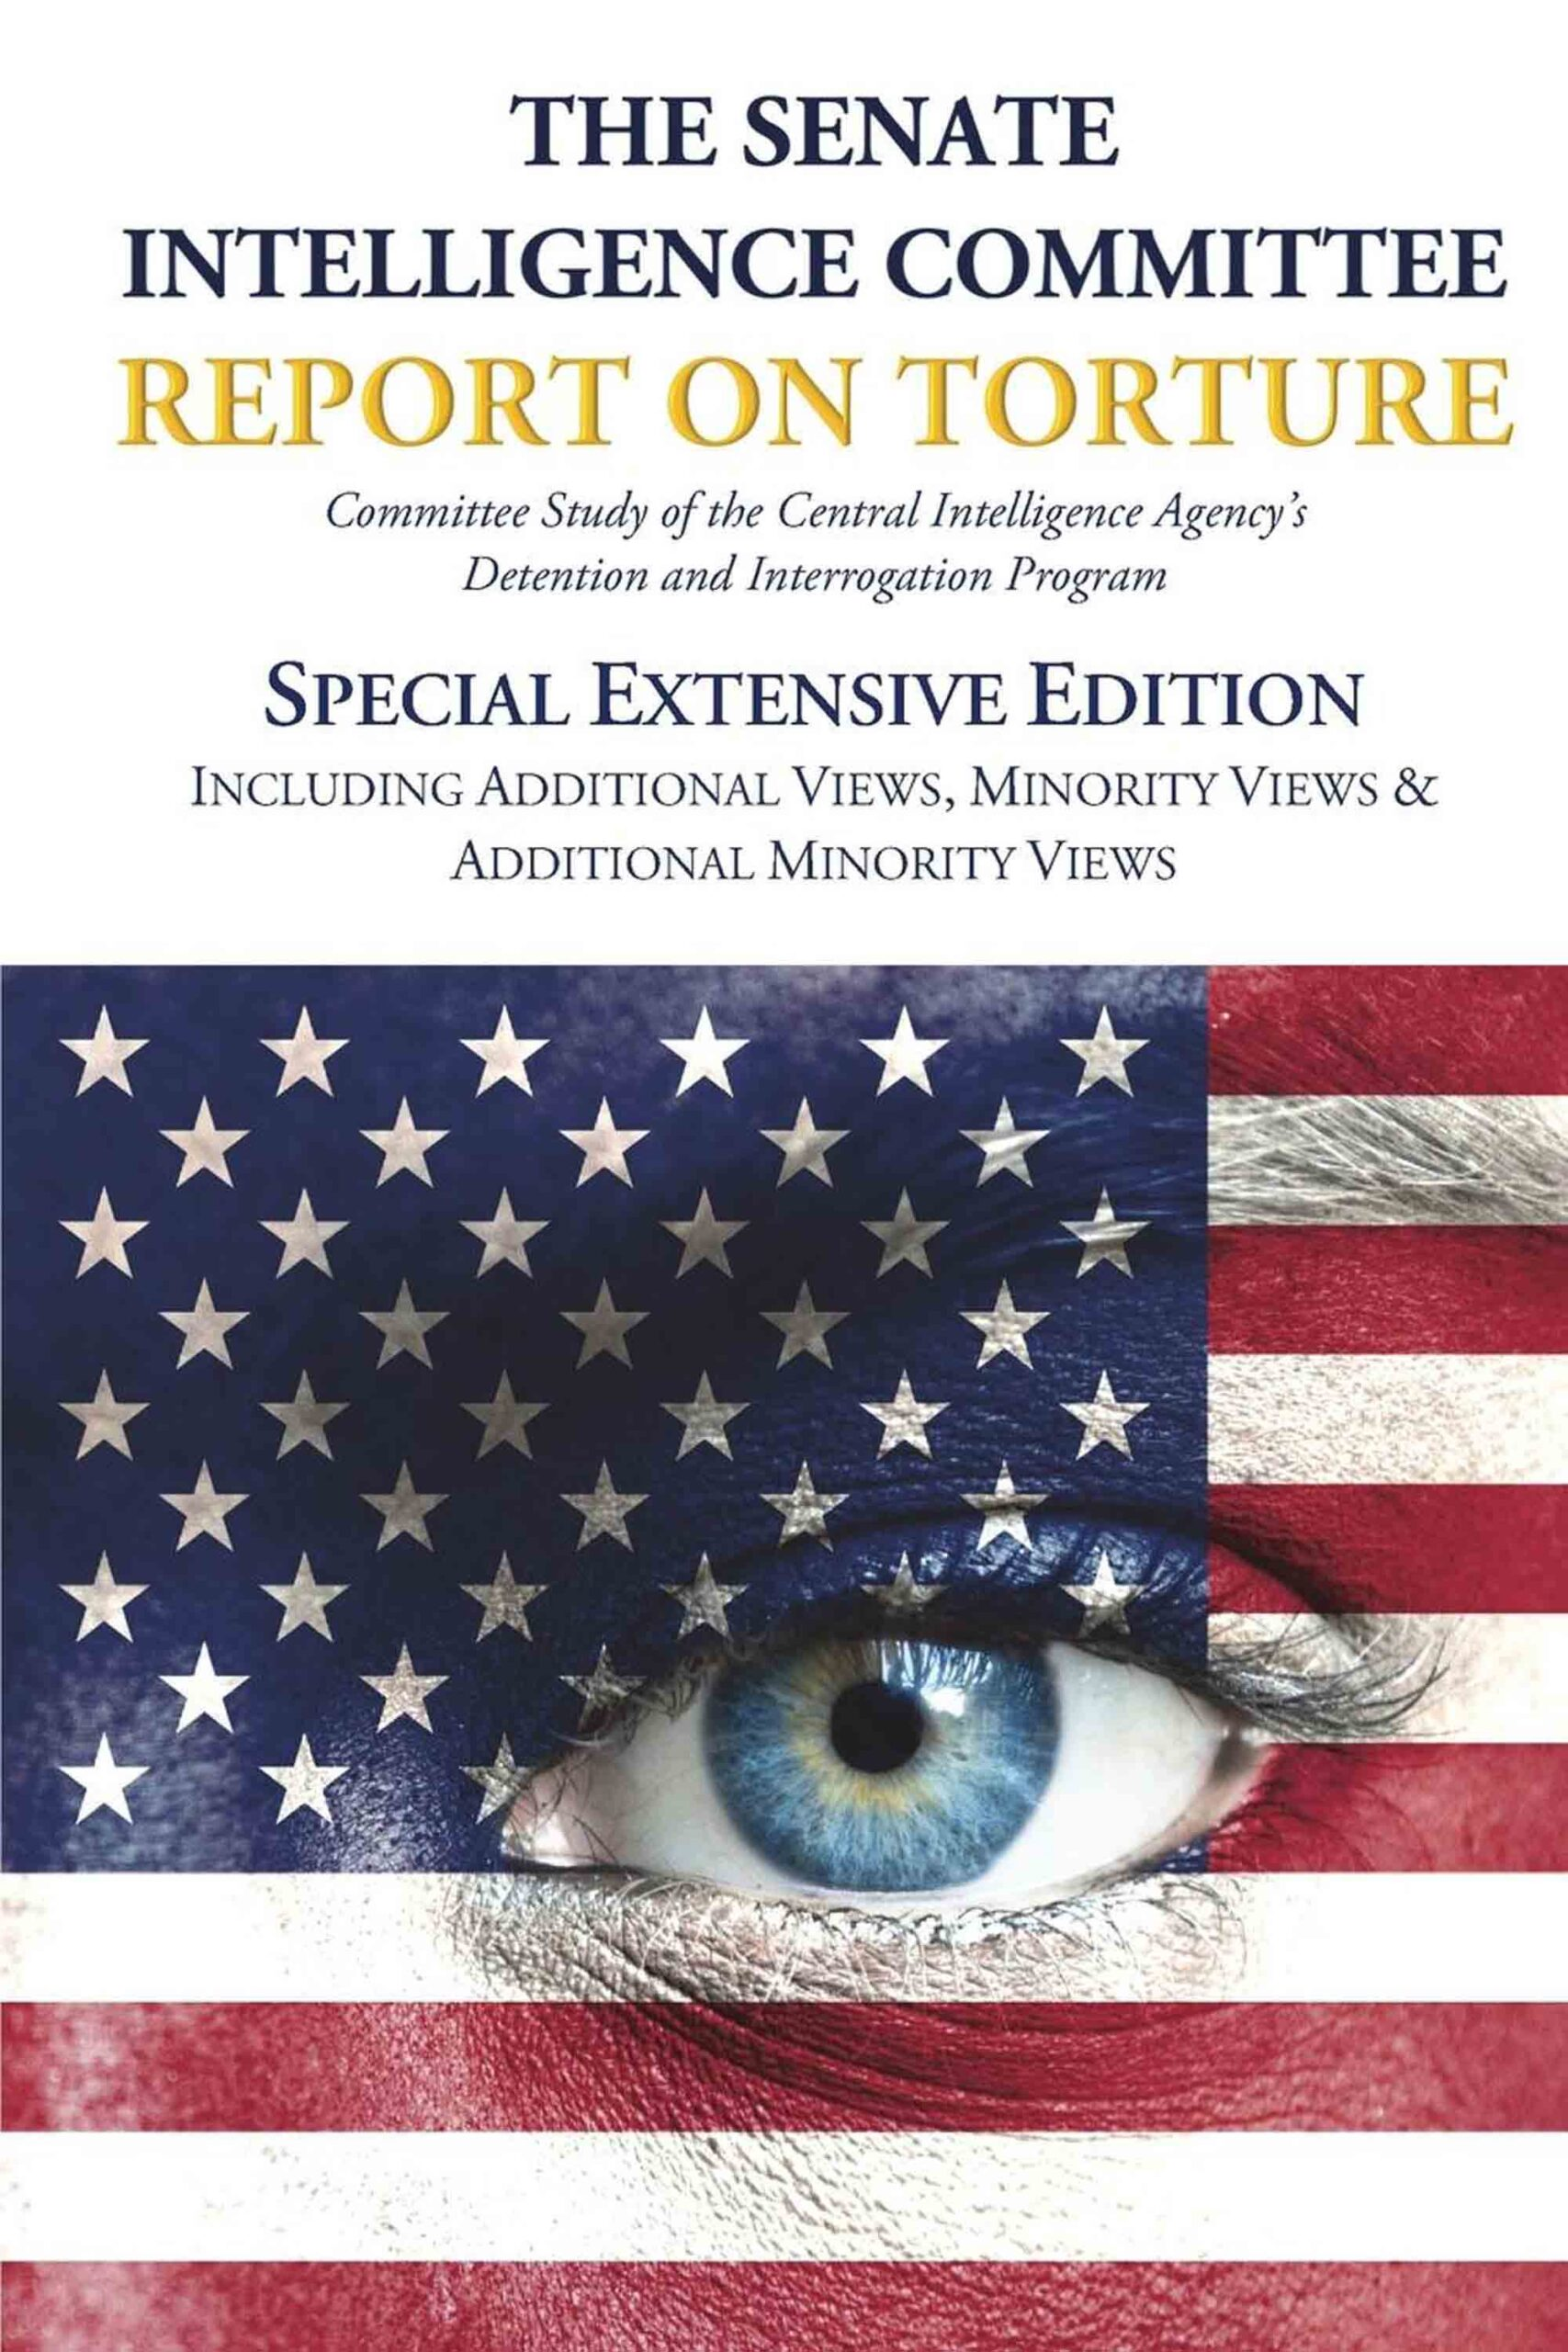 The Senate Intelligence Committee Report on Torture – Special Extensive Edition